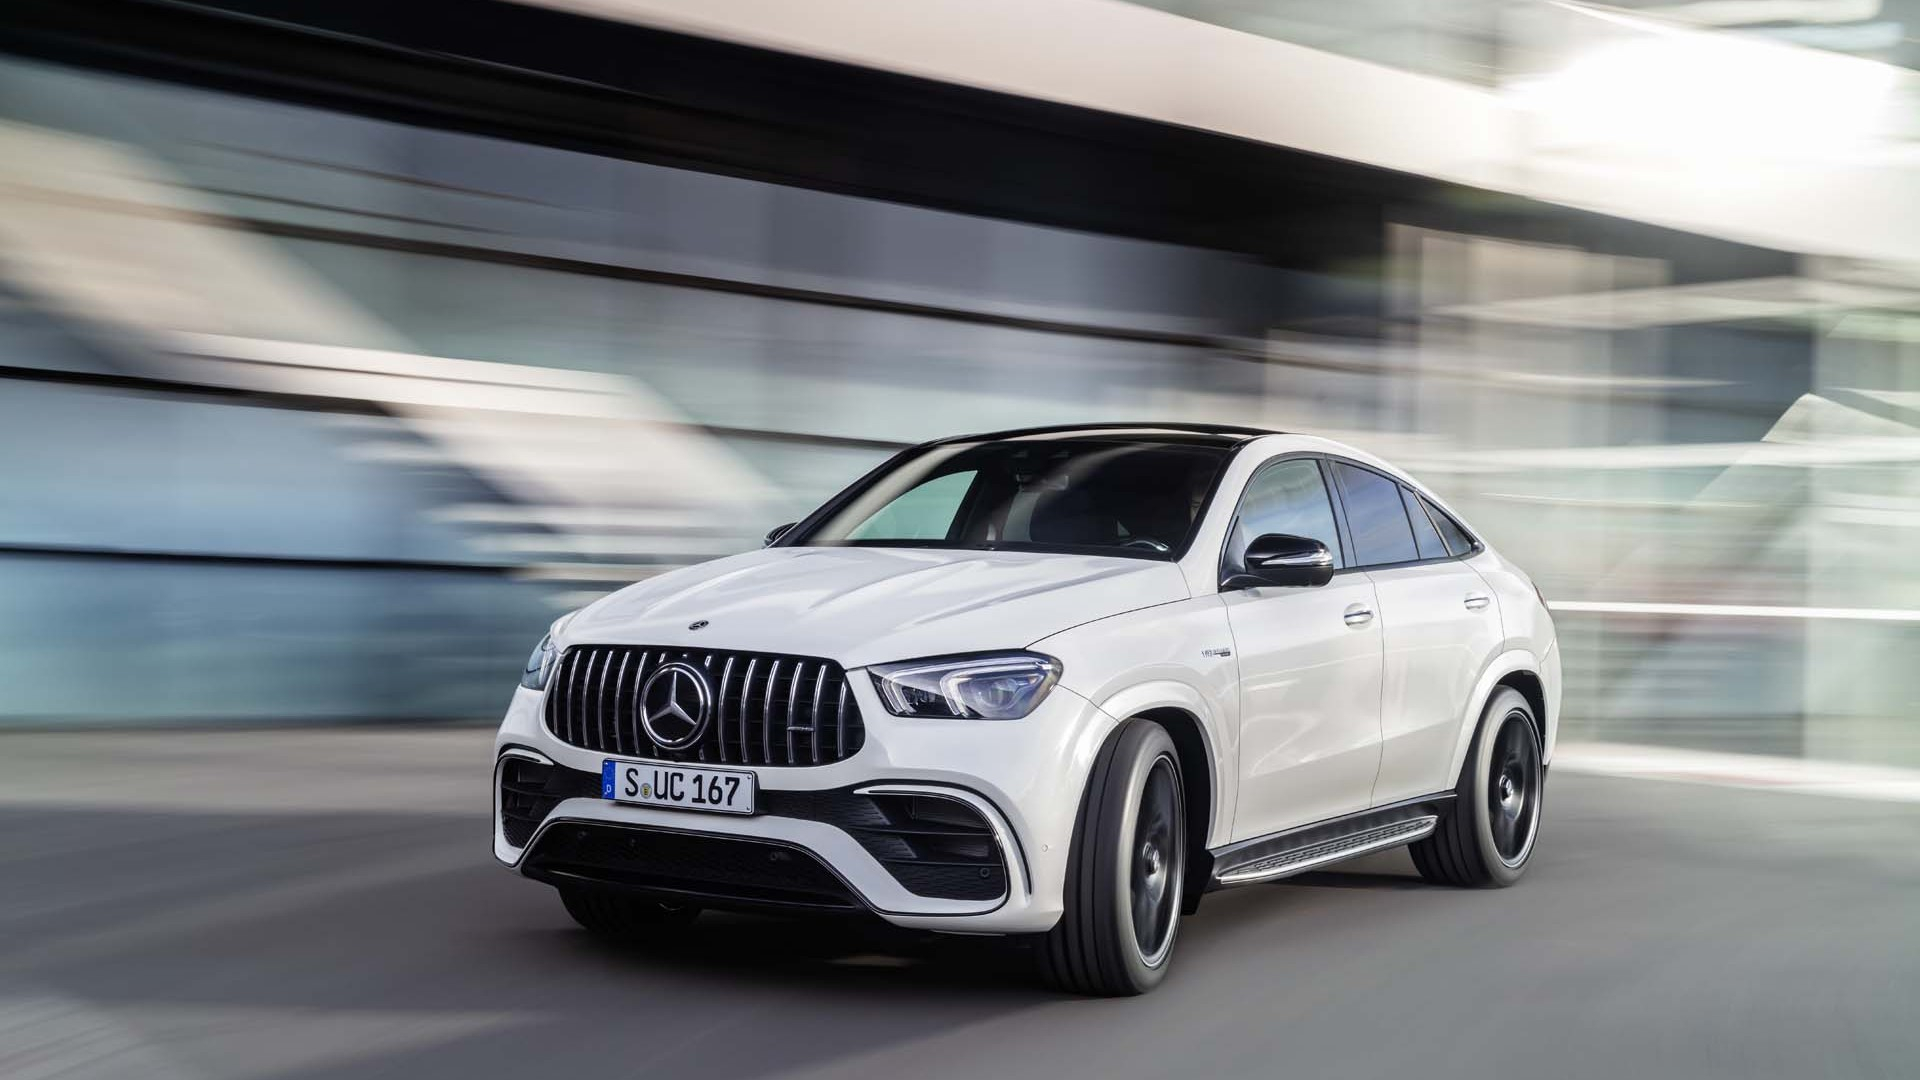 2021 Mercedes-Amg Gle63 S Coupe Arrives With 603 Horsepower 2021 Chevy Volt Inventory, Hatchback, Horsepower